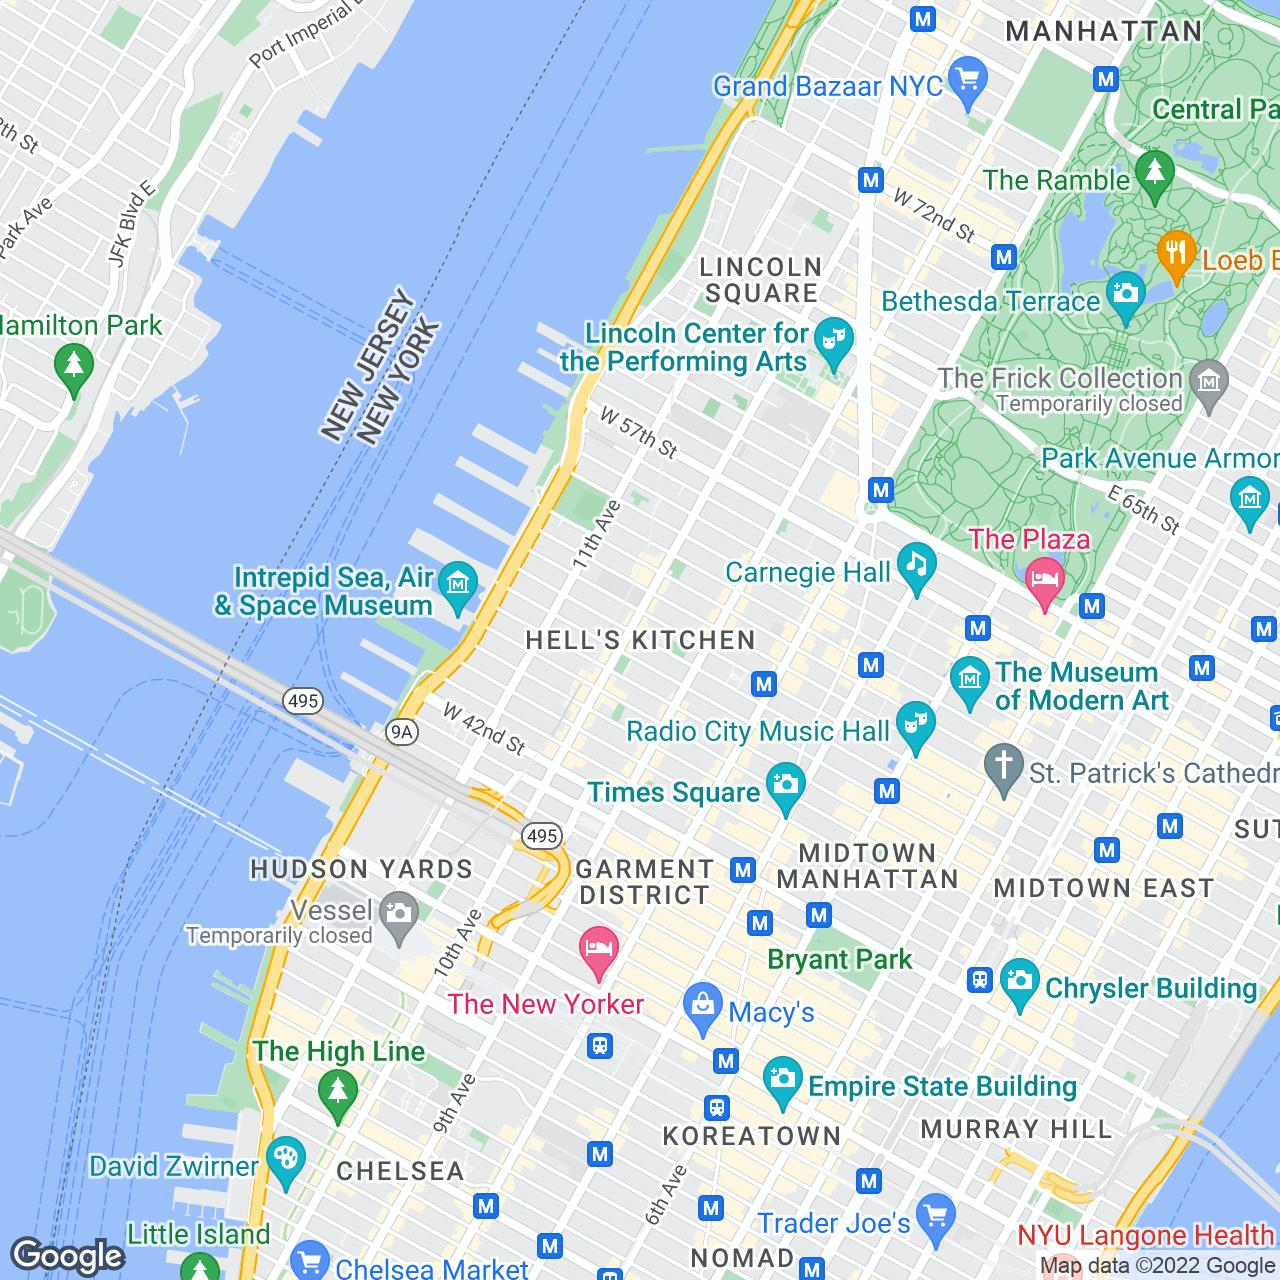 The Official Guide To New York City